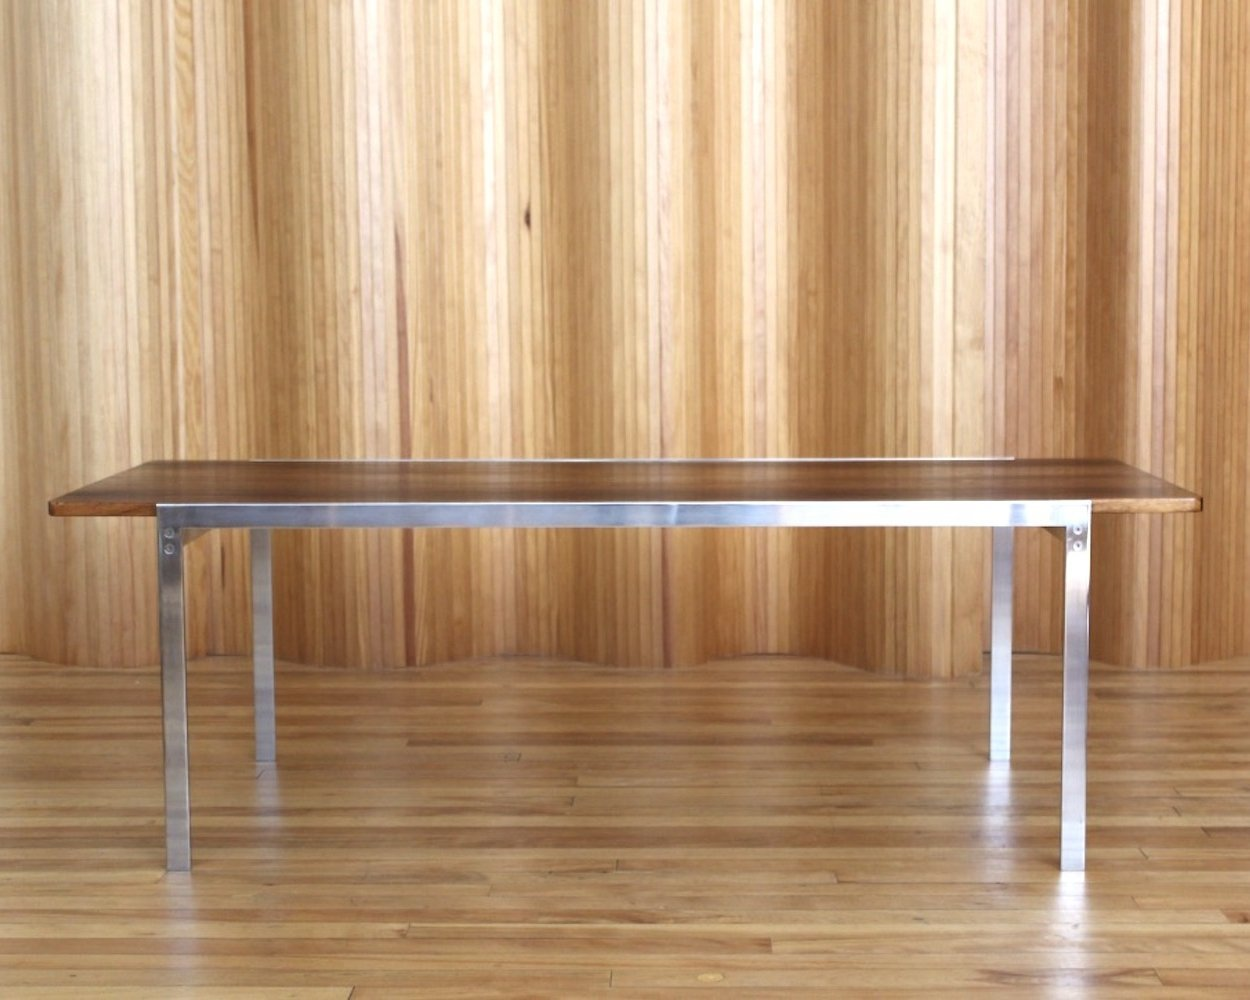 Arne Jacobsen model 3501 rosewood coffee table by Fritz Hansen Denmark